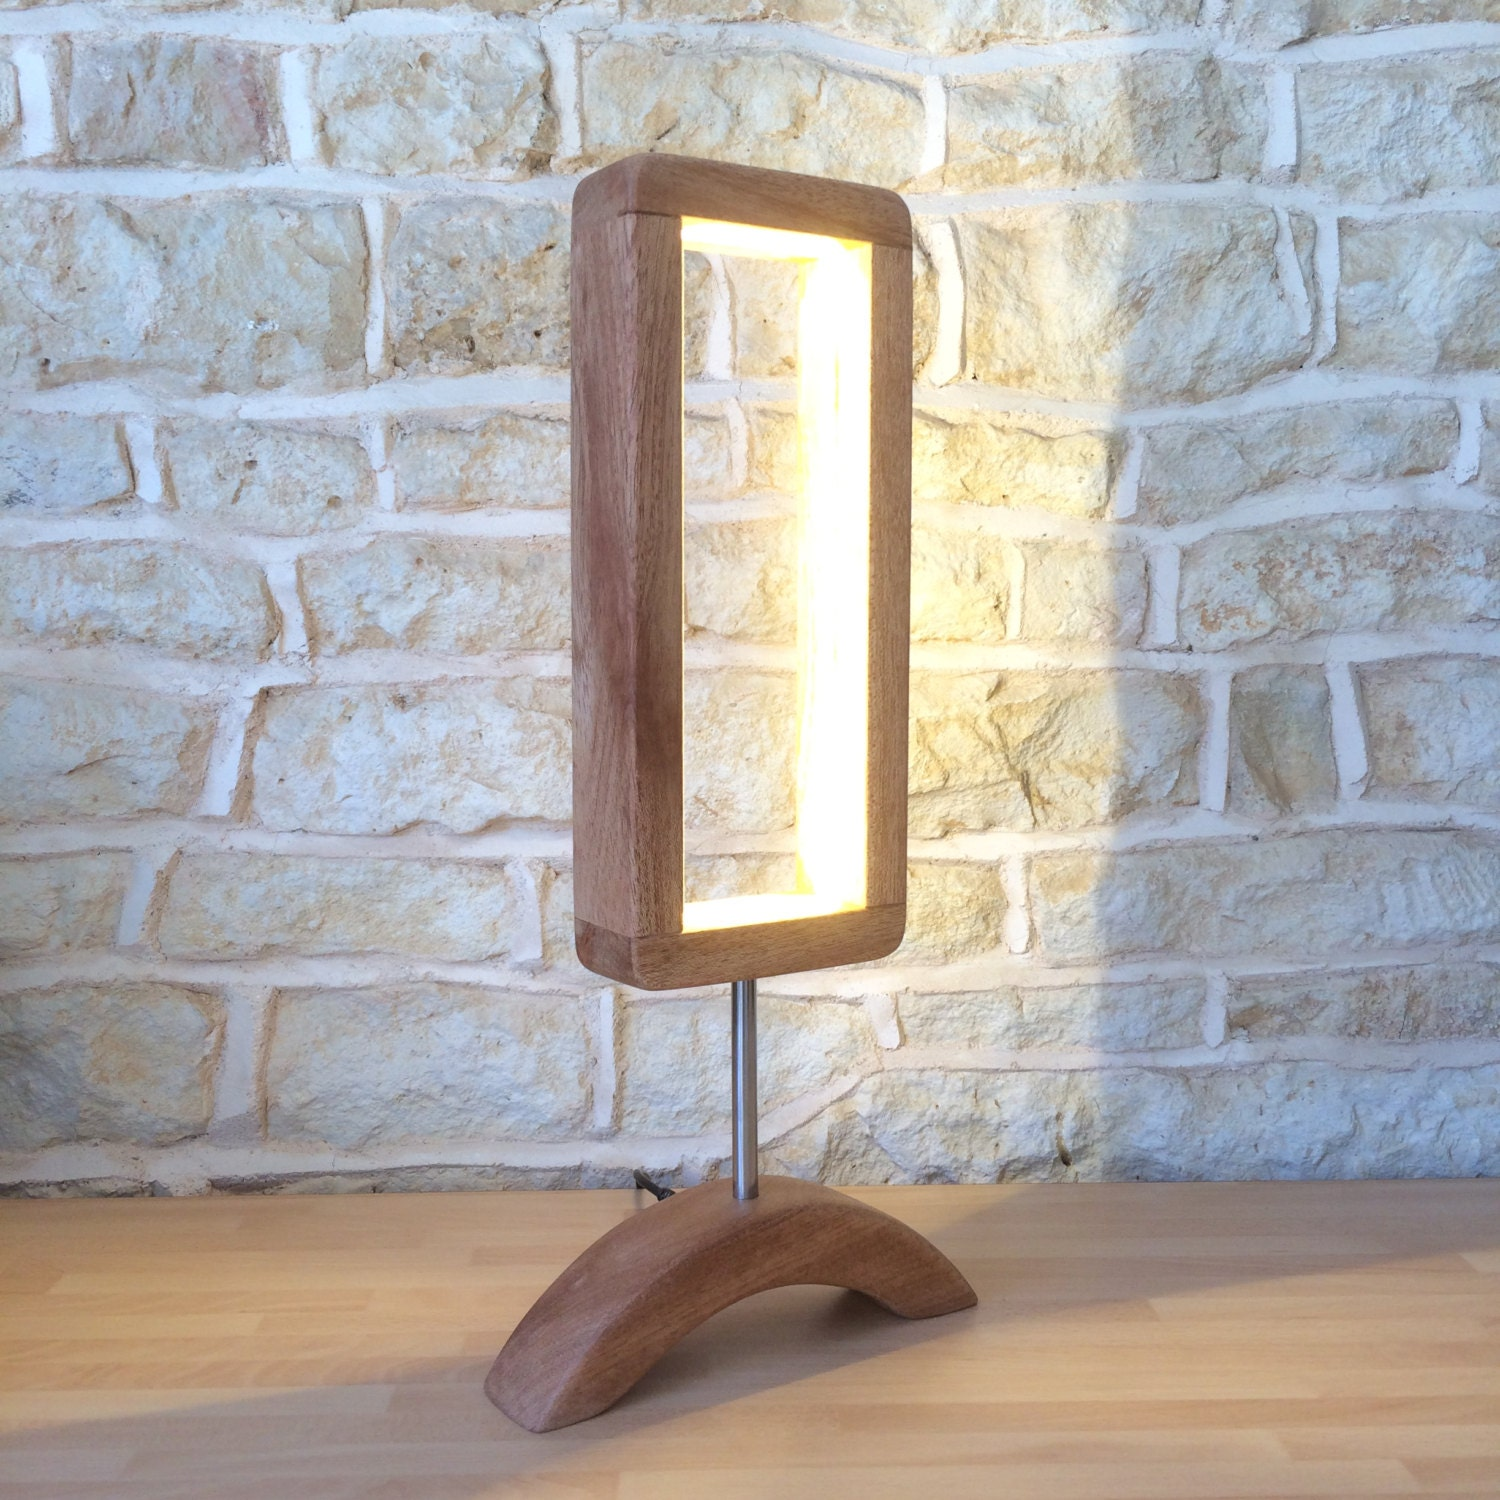 Hand Crafted Designer Table Lamp Wooden Desk Light Unusual